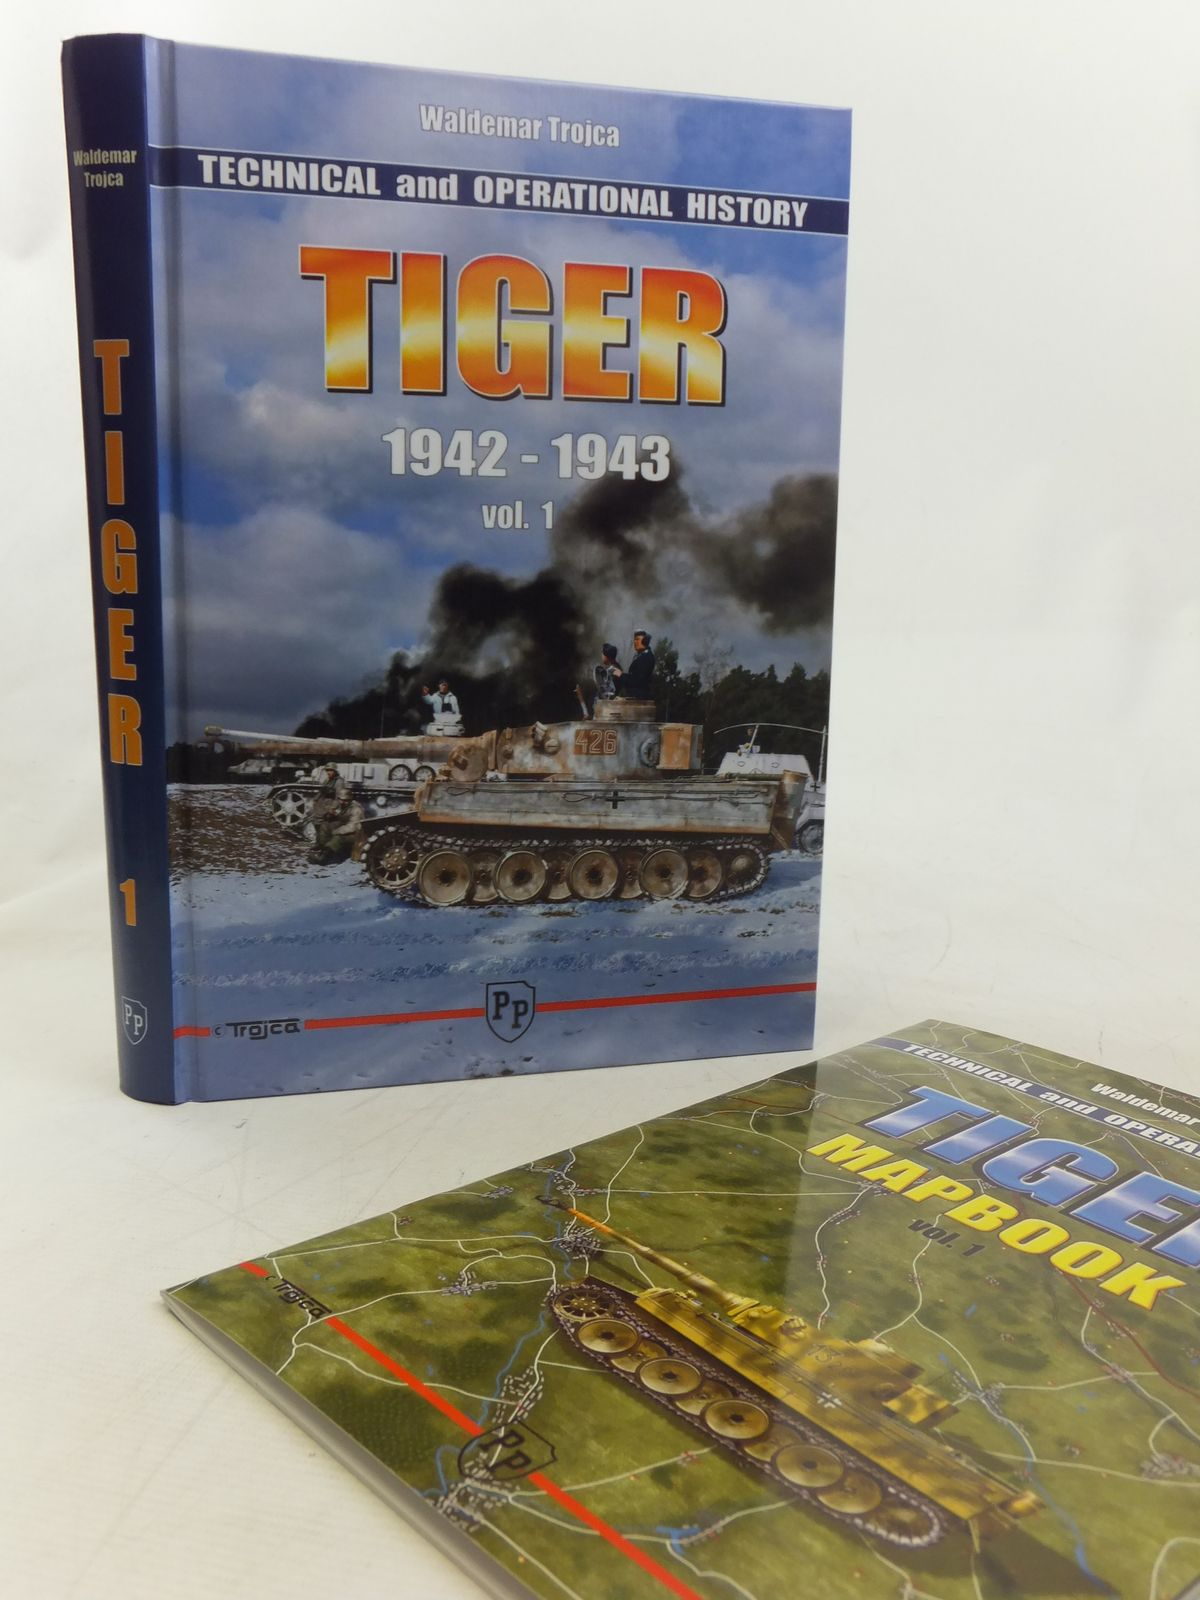 Photo of TECHNICAL AND OPERATIONAL HISTORY TIGER 1942-1973 VOL. 1 written by Trojca, Waldemar published by Model Hobby (STOCK CODE: 2118259)  for sale by Stella & Rose's Books